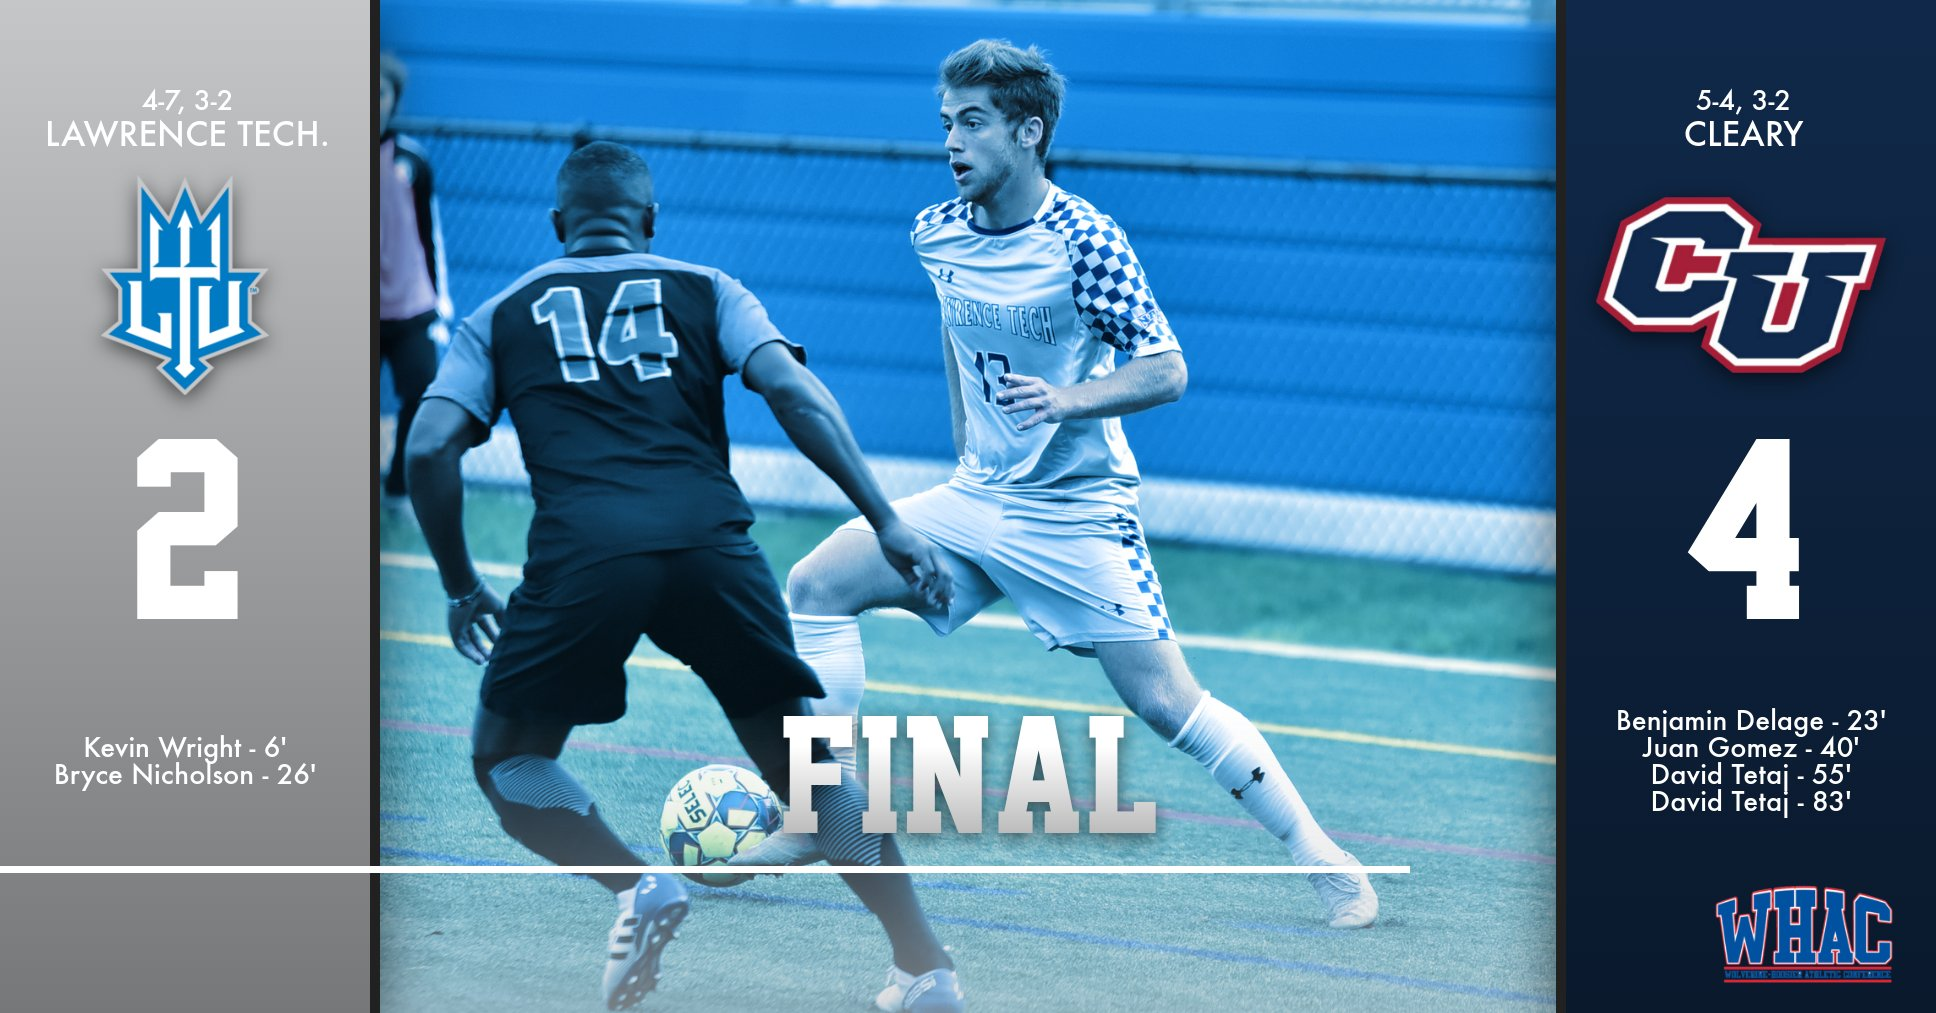 Blue Devils Come Up Short on the Road vs. Cleary (Mich.) University; Wright Scores 5th Goal in Four Matches.